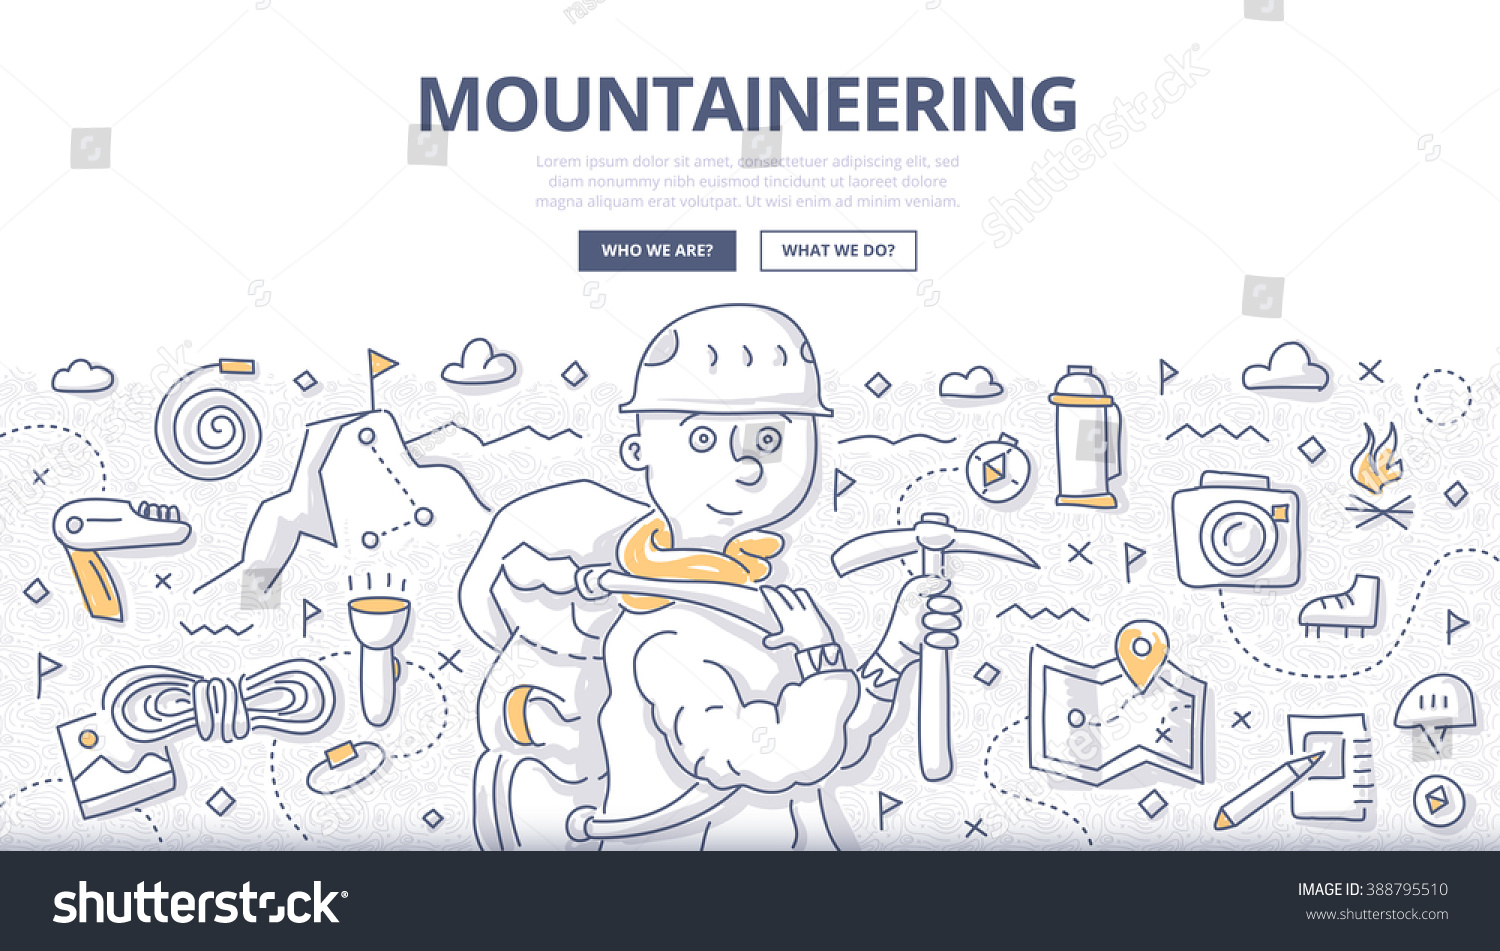 Doodle vector illustration of mountain exploration climbing adventure trekking and outdoor recreation Concept of mountaineering for web banners hero images printed materials